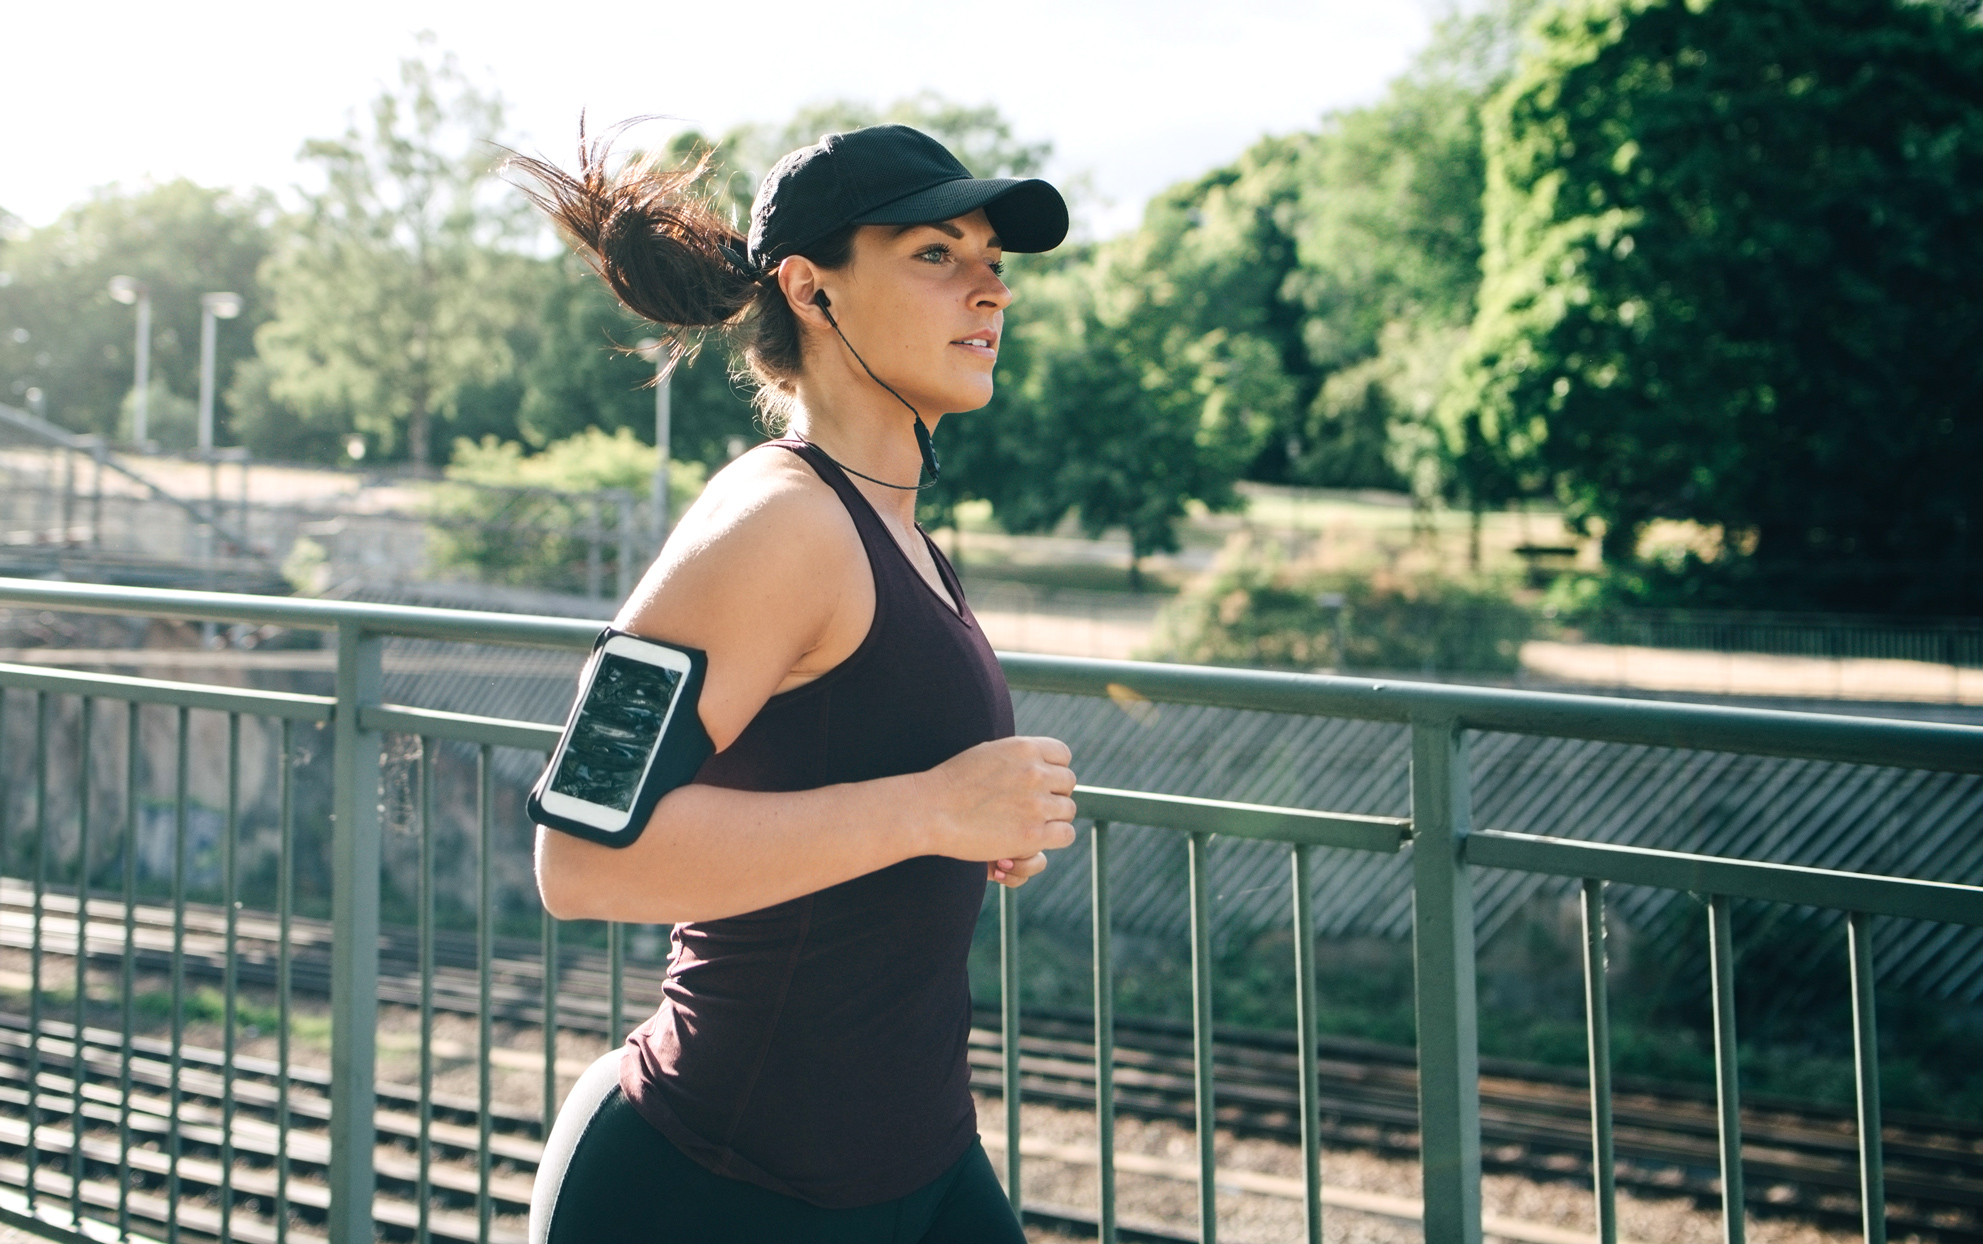 woman running outside with earbuds listening on her cell phone